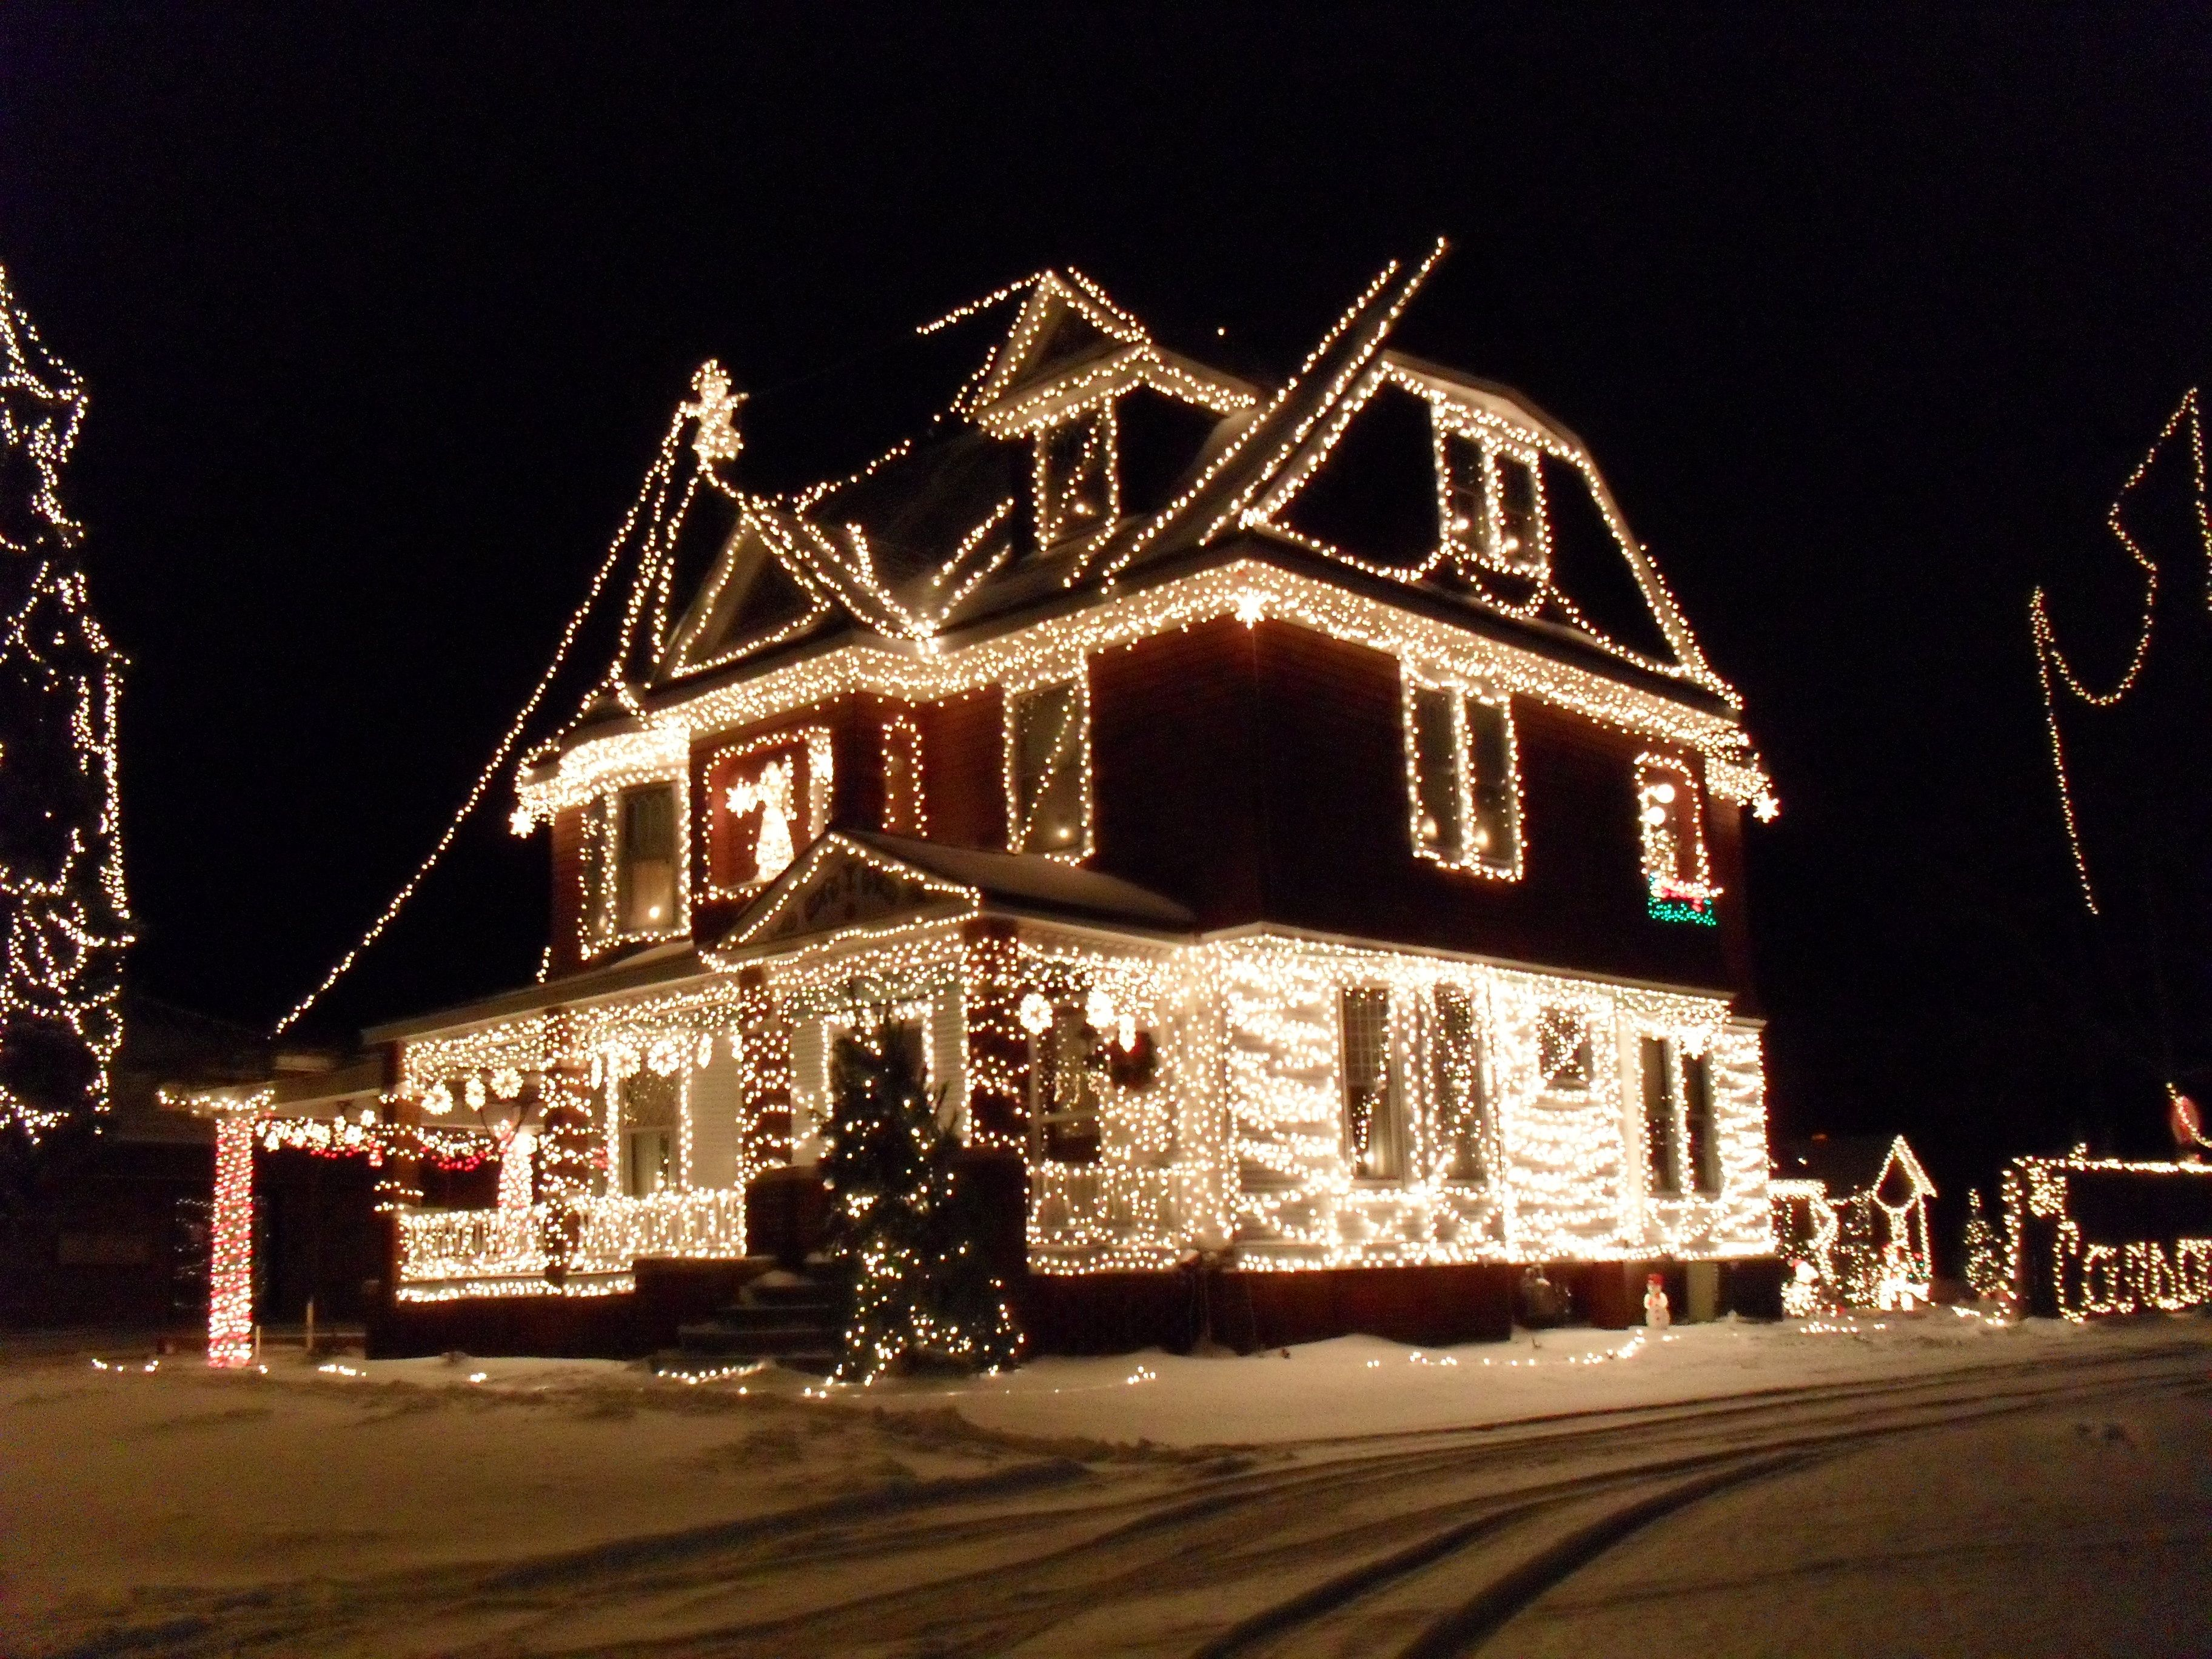 What people drive around at night during christmas to see luxury beast and biggest outdoor christmas lights at house ideas mozeypictures Choice Image